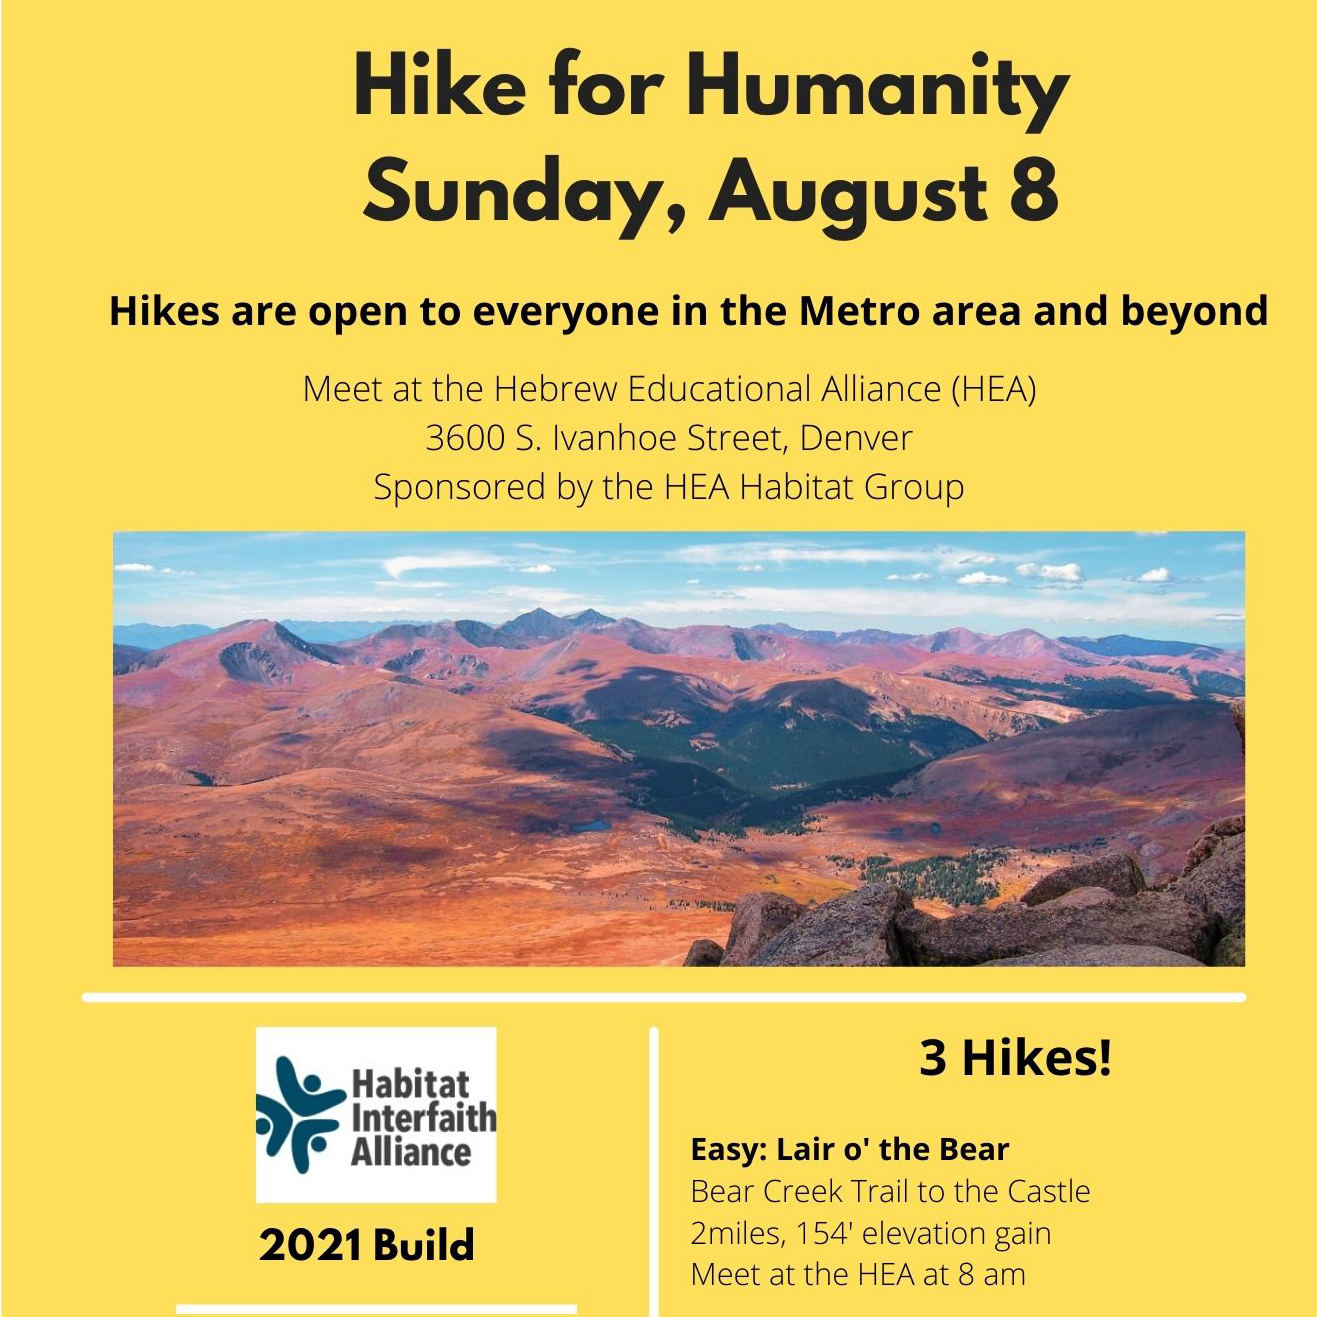 Hike for Humanity